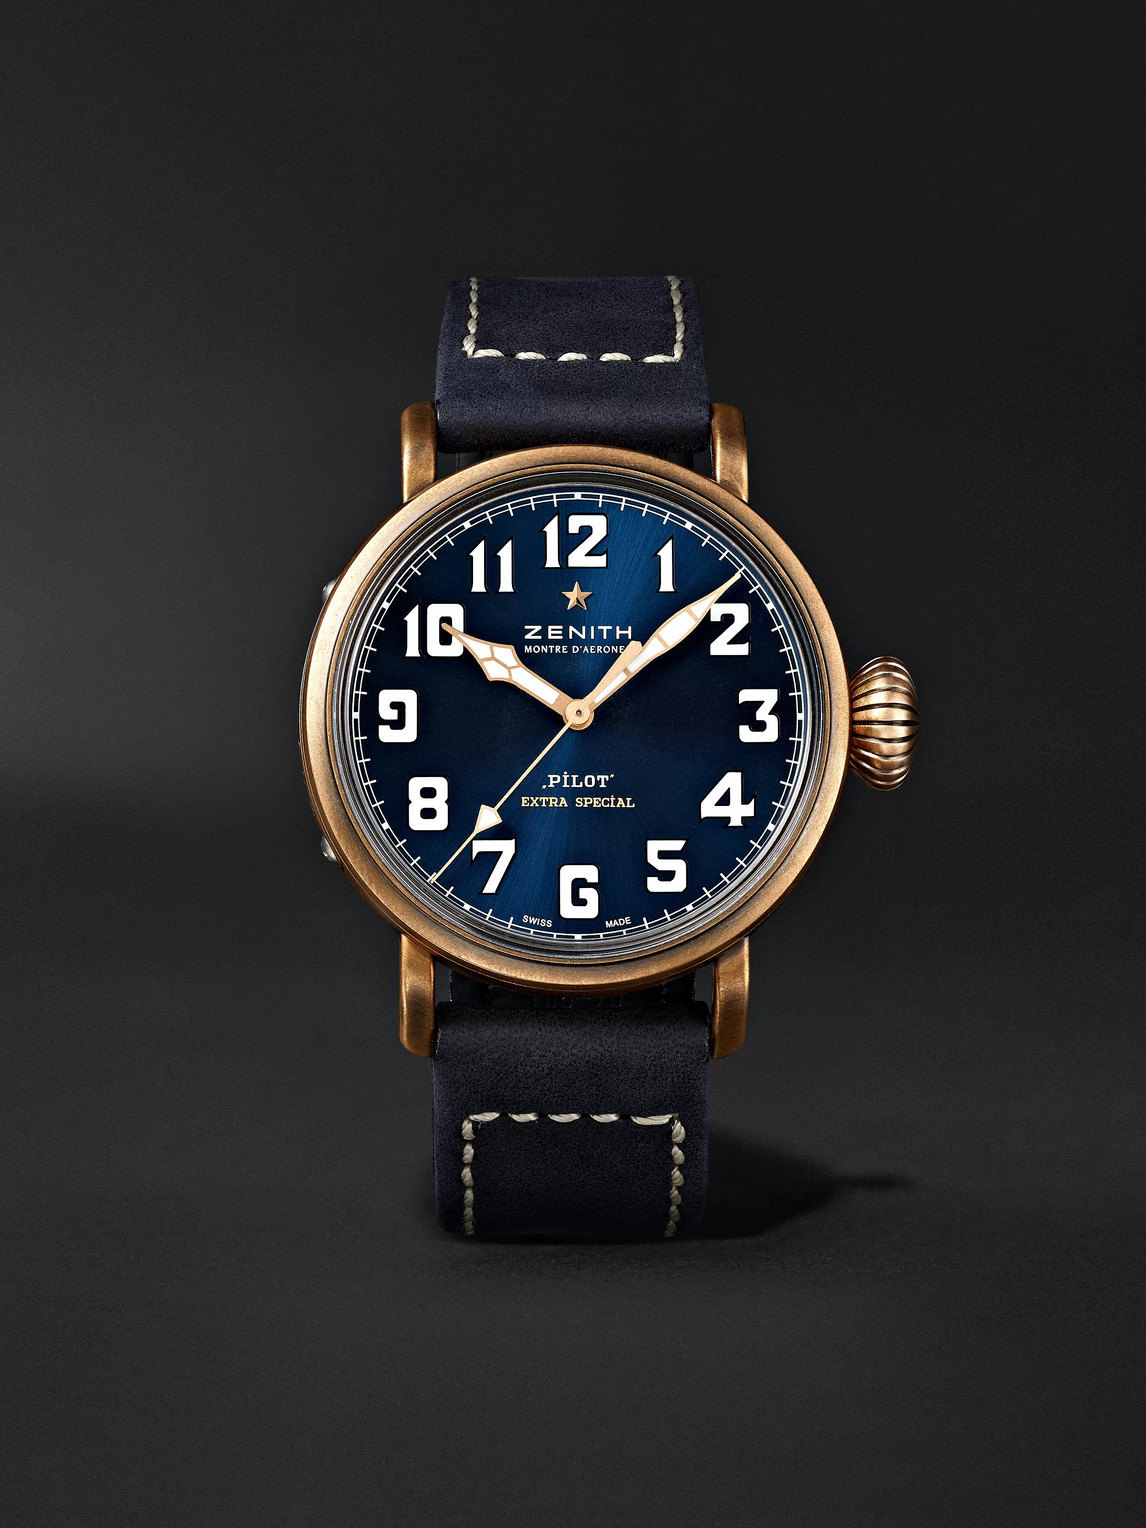 Zenith Pilot Type 20 Extra Special Automatic 40mm Bronze And Nubuck Watch In Blue